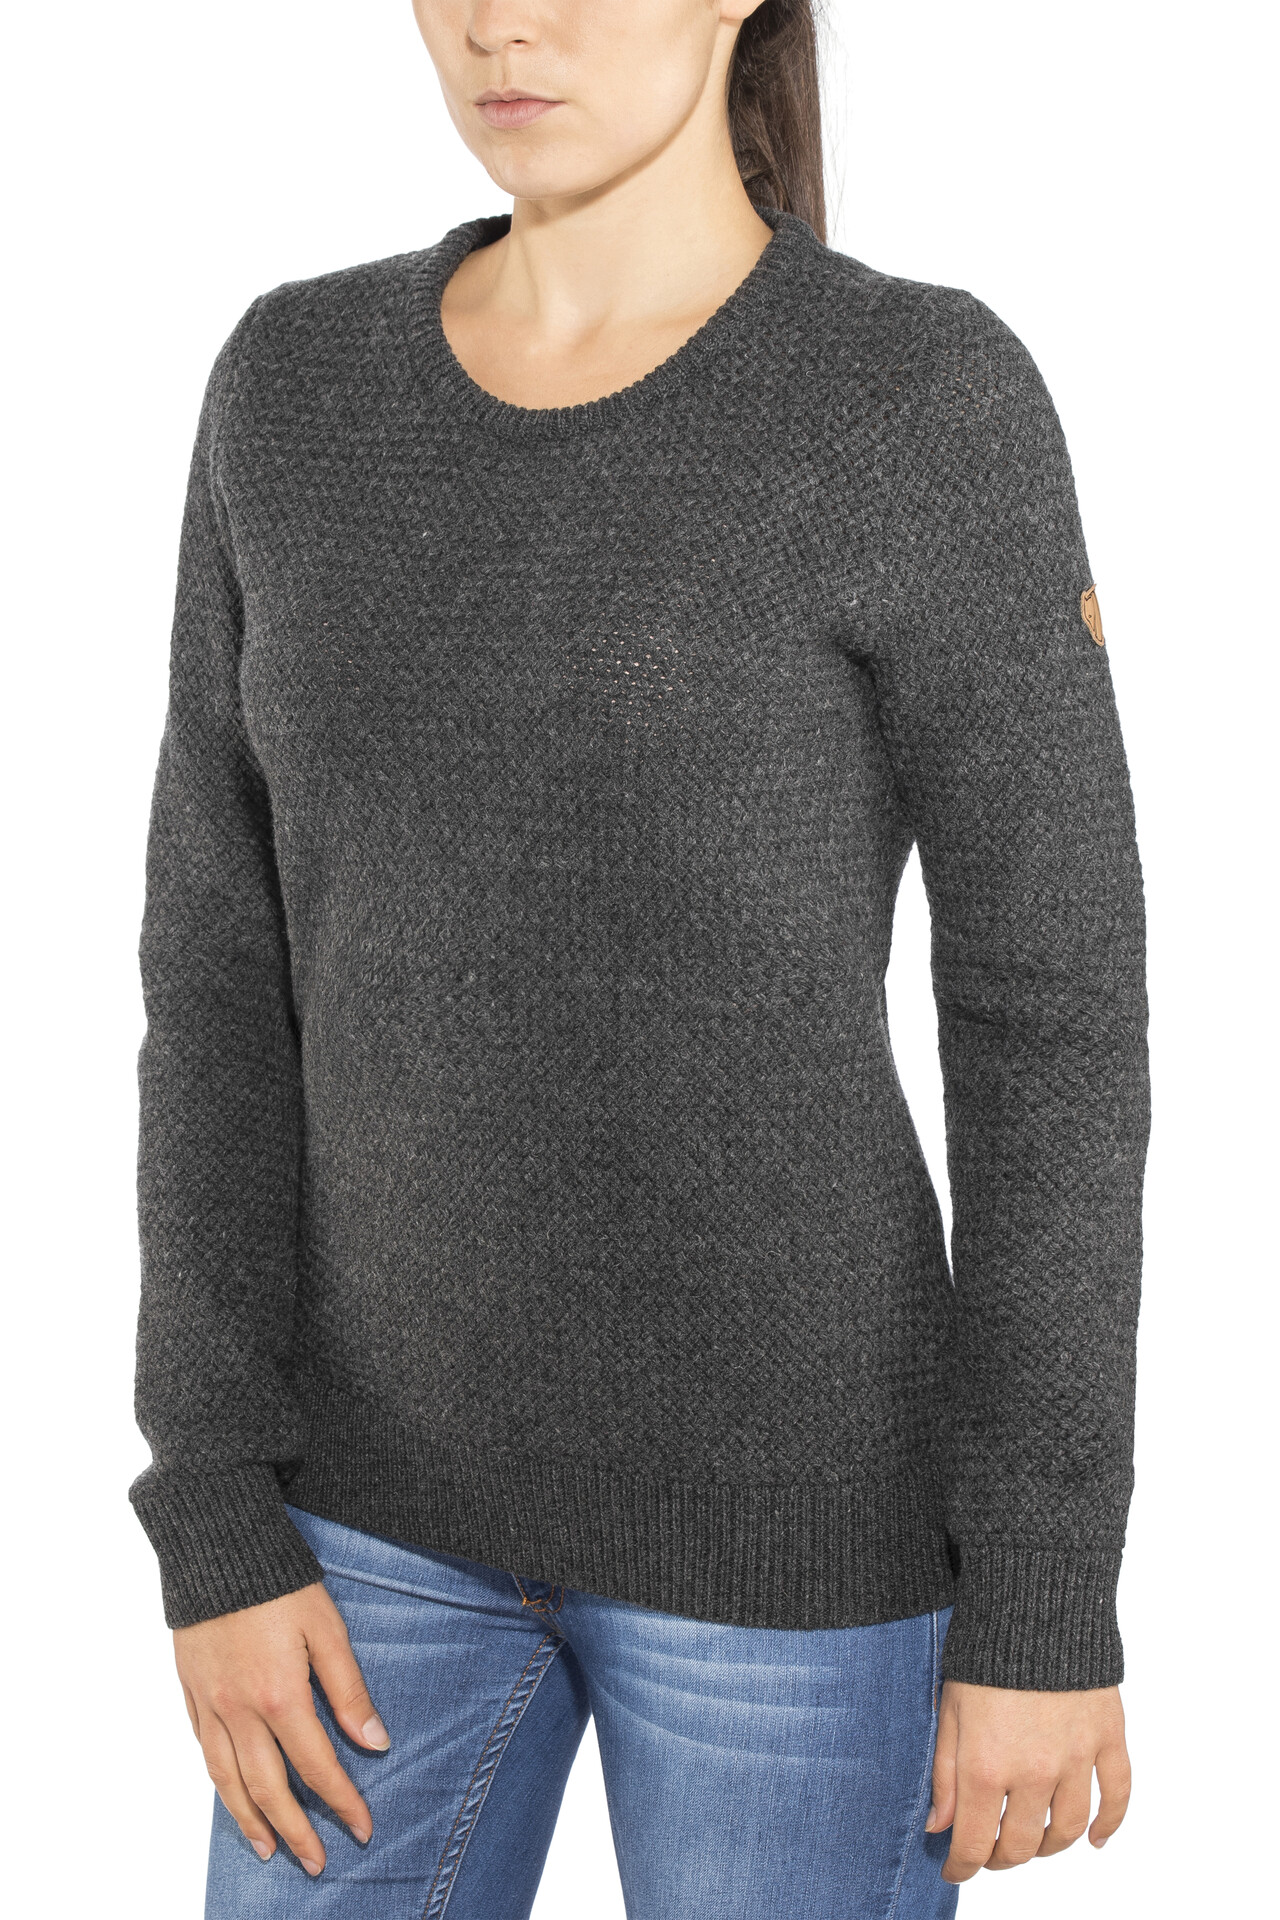 Icebreaker Waypoint Rundhals Sweater Damen toast heather